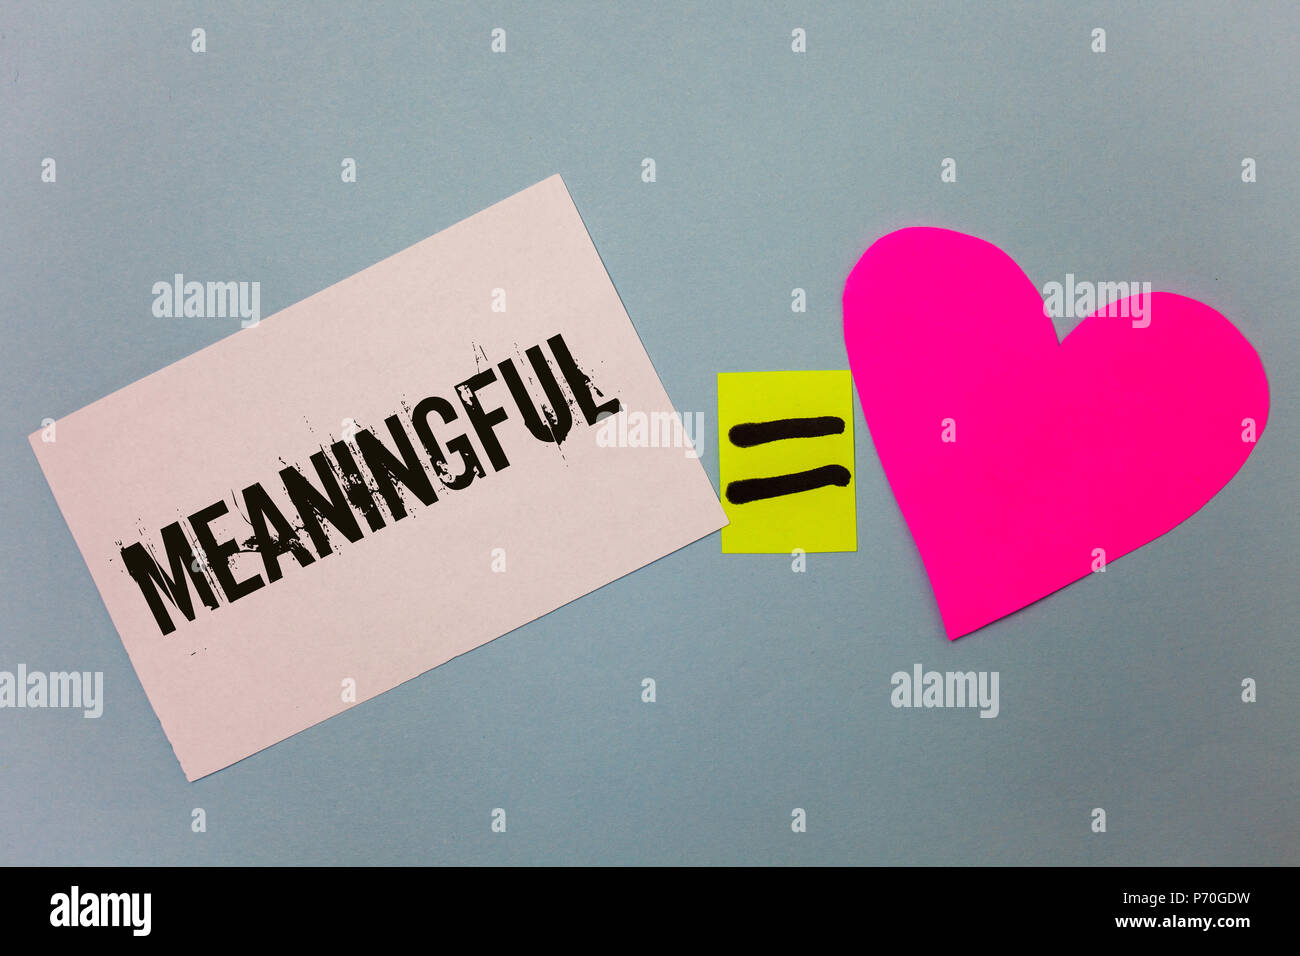 Handwriting Text Writing Meaningful Concept Meaning Having Meaning